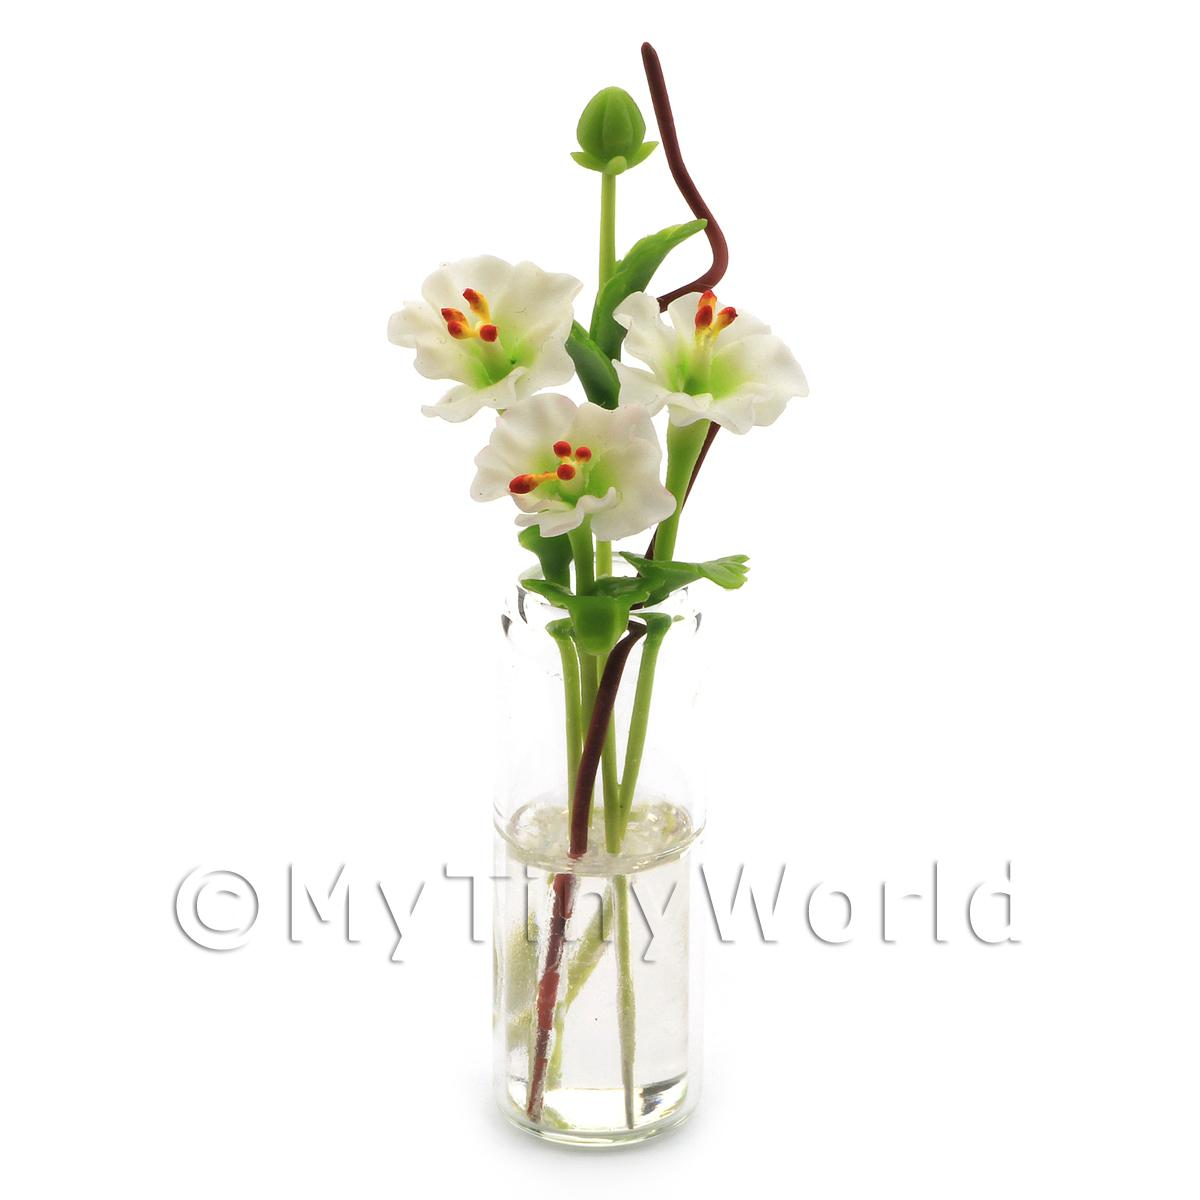 4 Miniature White Cut Flowers in a Glass Vase